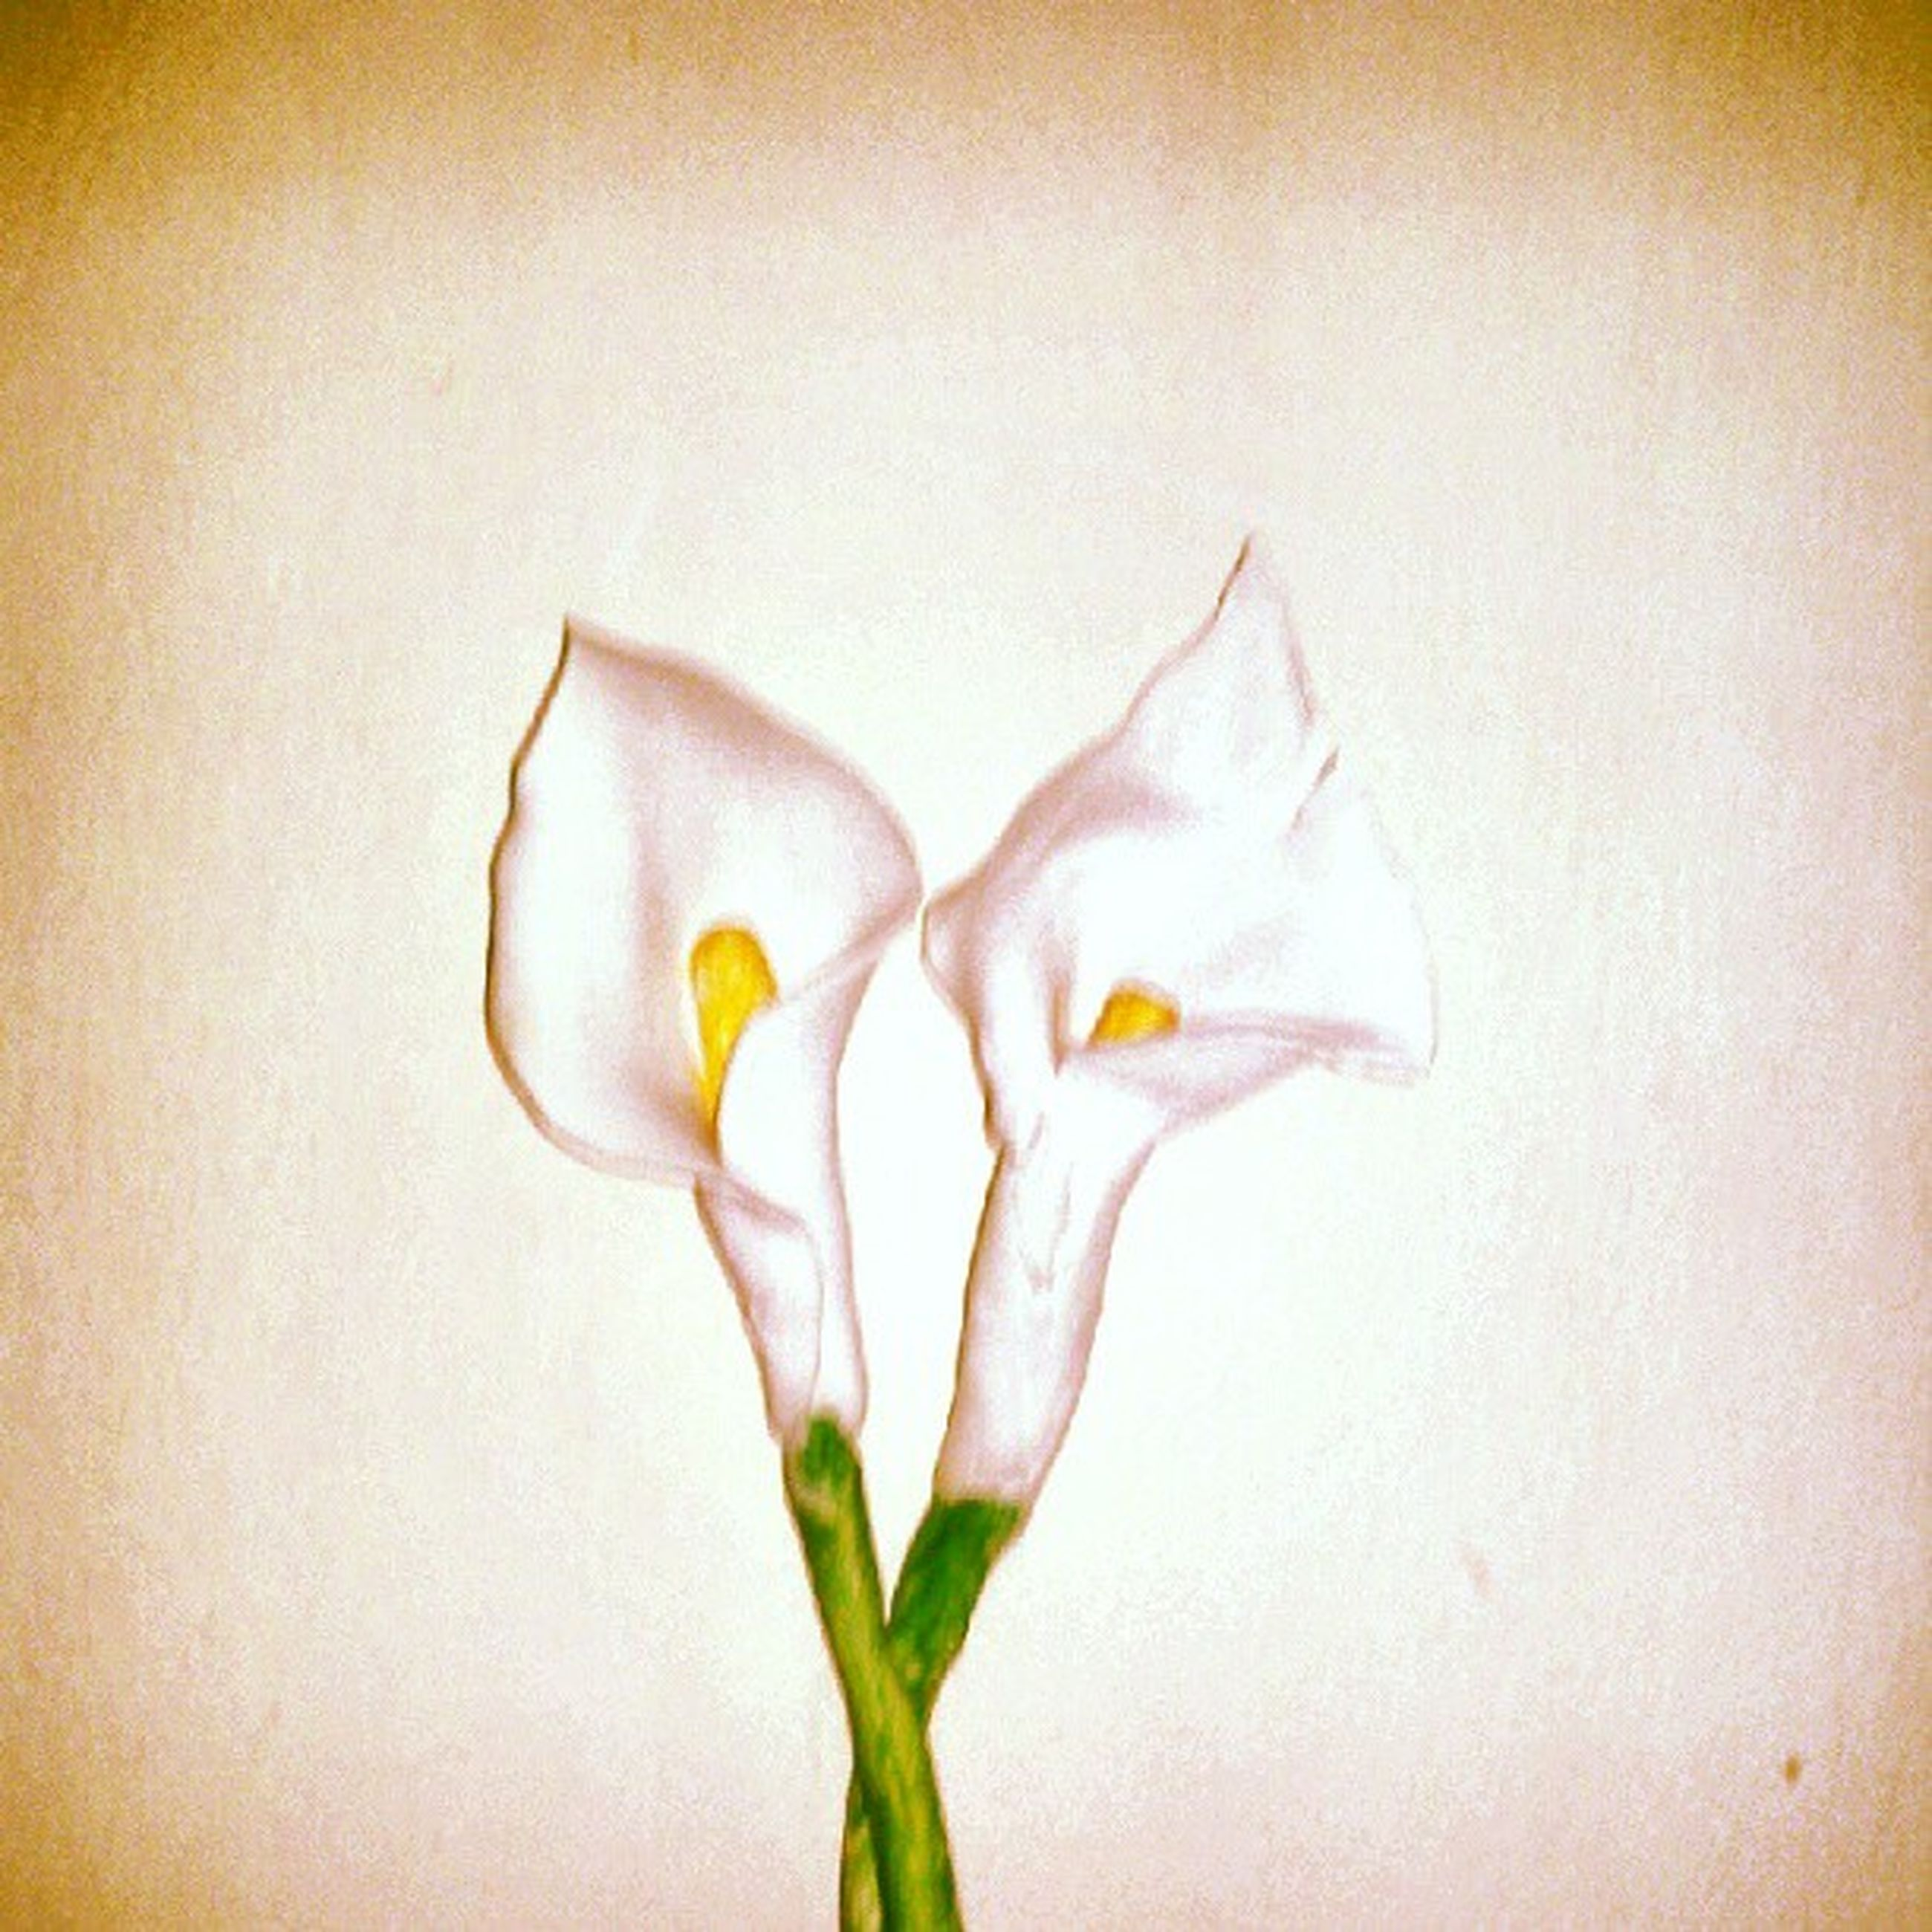 flower, petal, flower head, fragility, freshness, white color, close-up, indoors, studio shot, wall - building feature, stem, beauty in nature, plant, white, growth, single flower, white background, nature, copy space, leaf